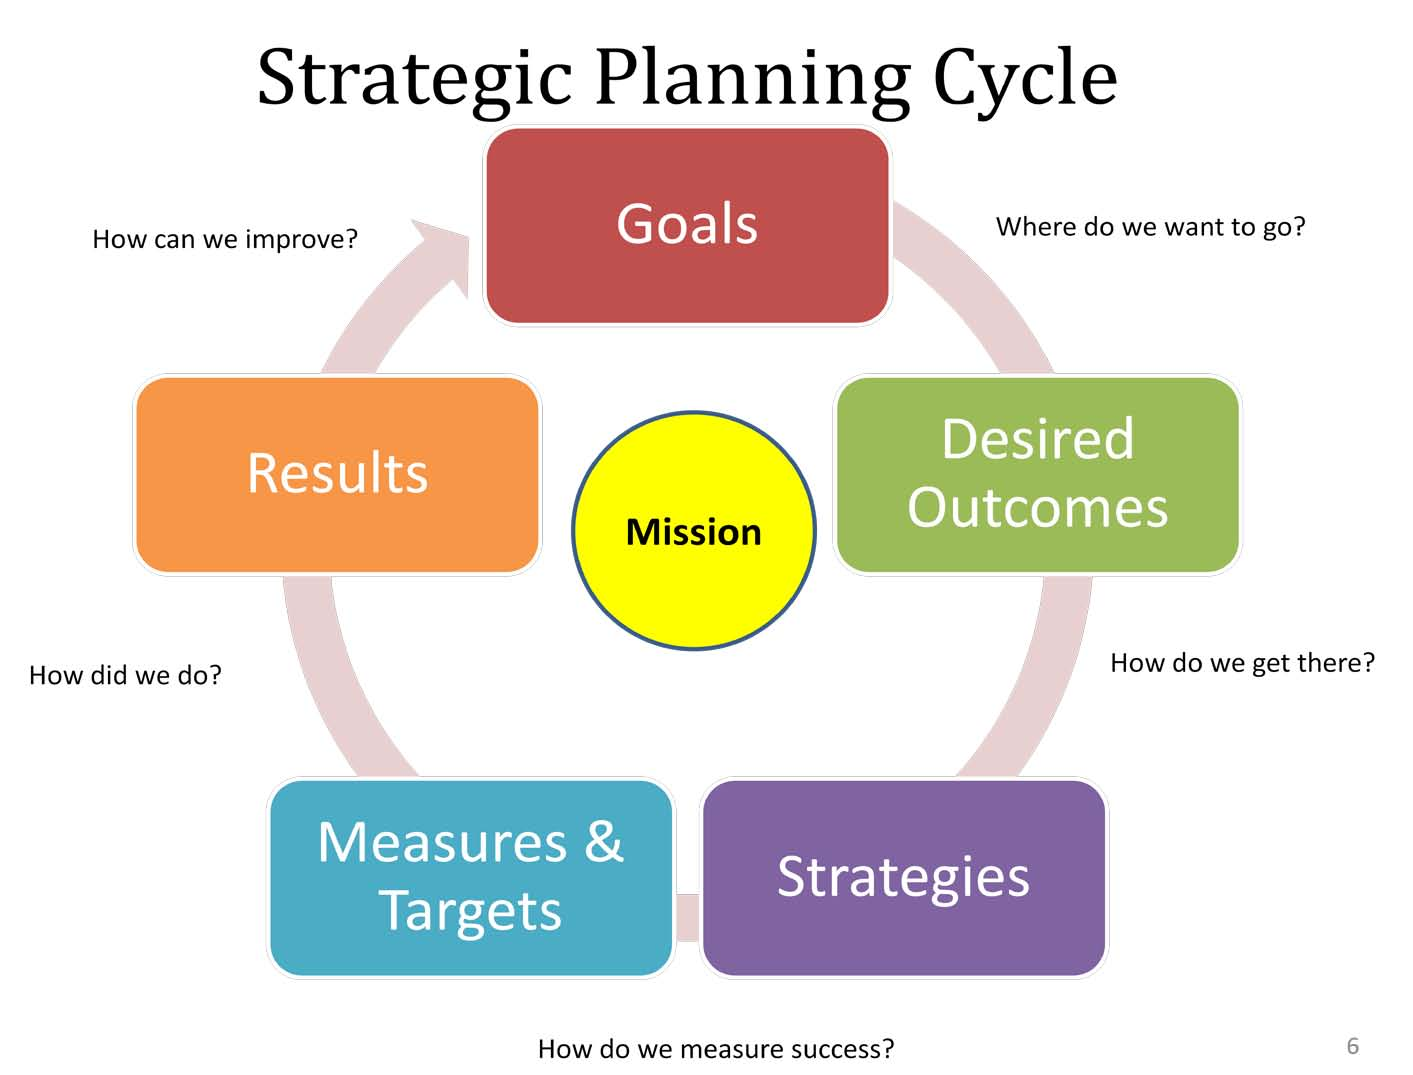 review of article on strategic planning Here is part 1 of a two-article series on strategic planning and alternatives to   strategic planning swept into the nonprofit sector in the mid 1980s  include the  resource impact analysis - both financial and human resources.